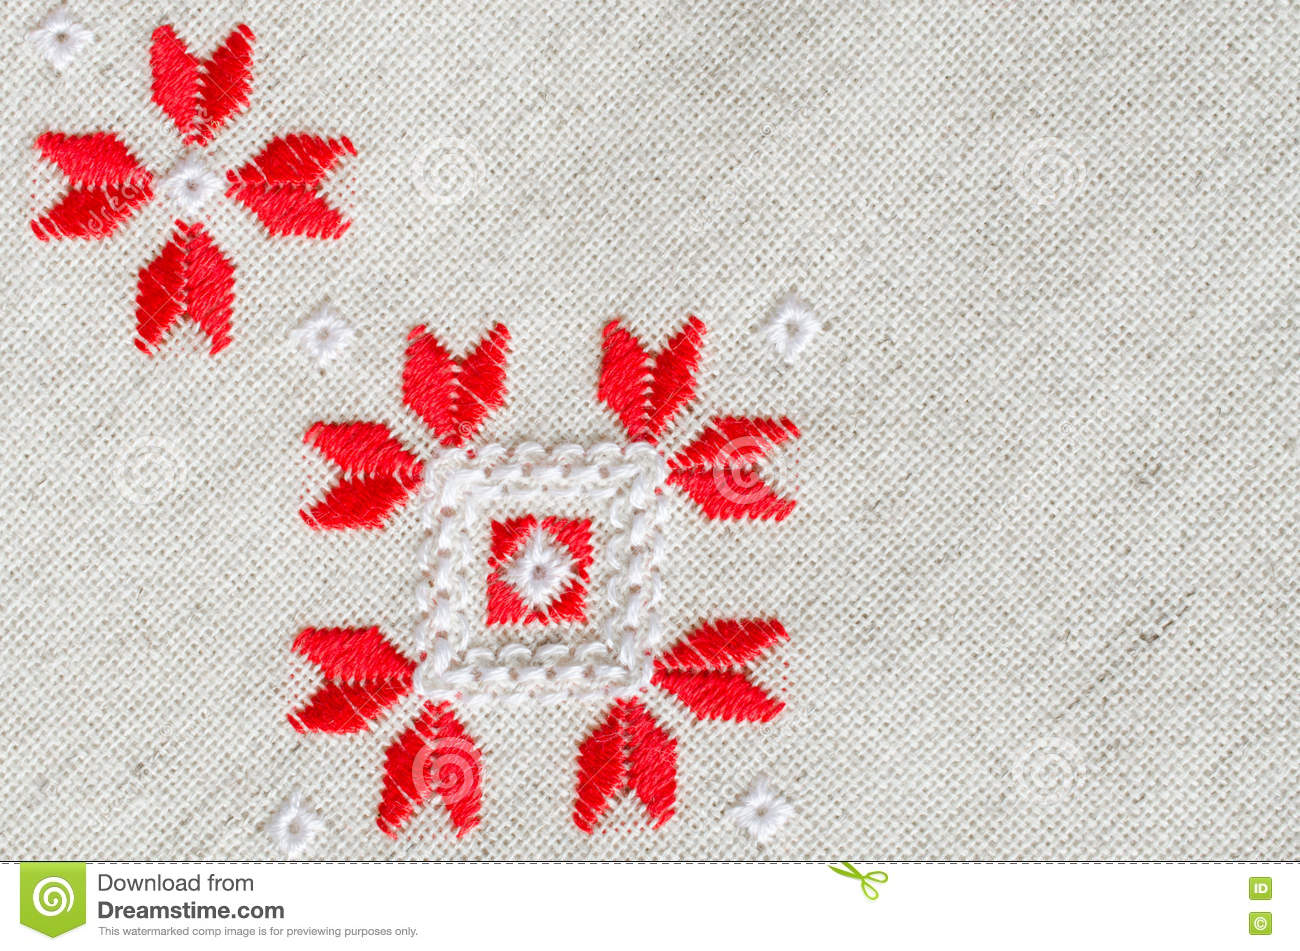 Embroidery Design By Red And White Cotton Threads On Flax. Christmas ...